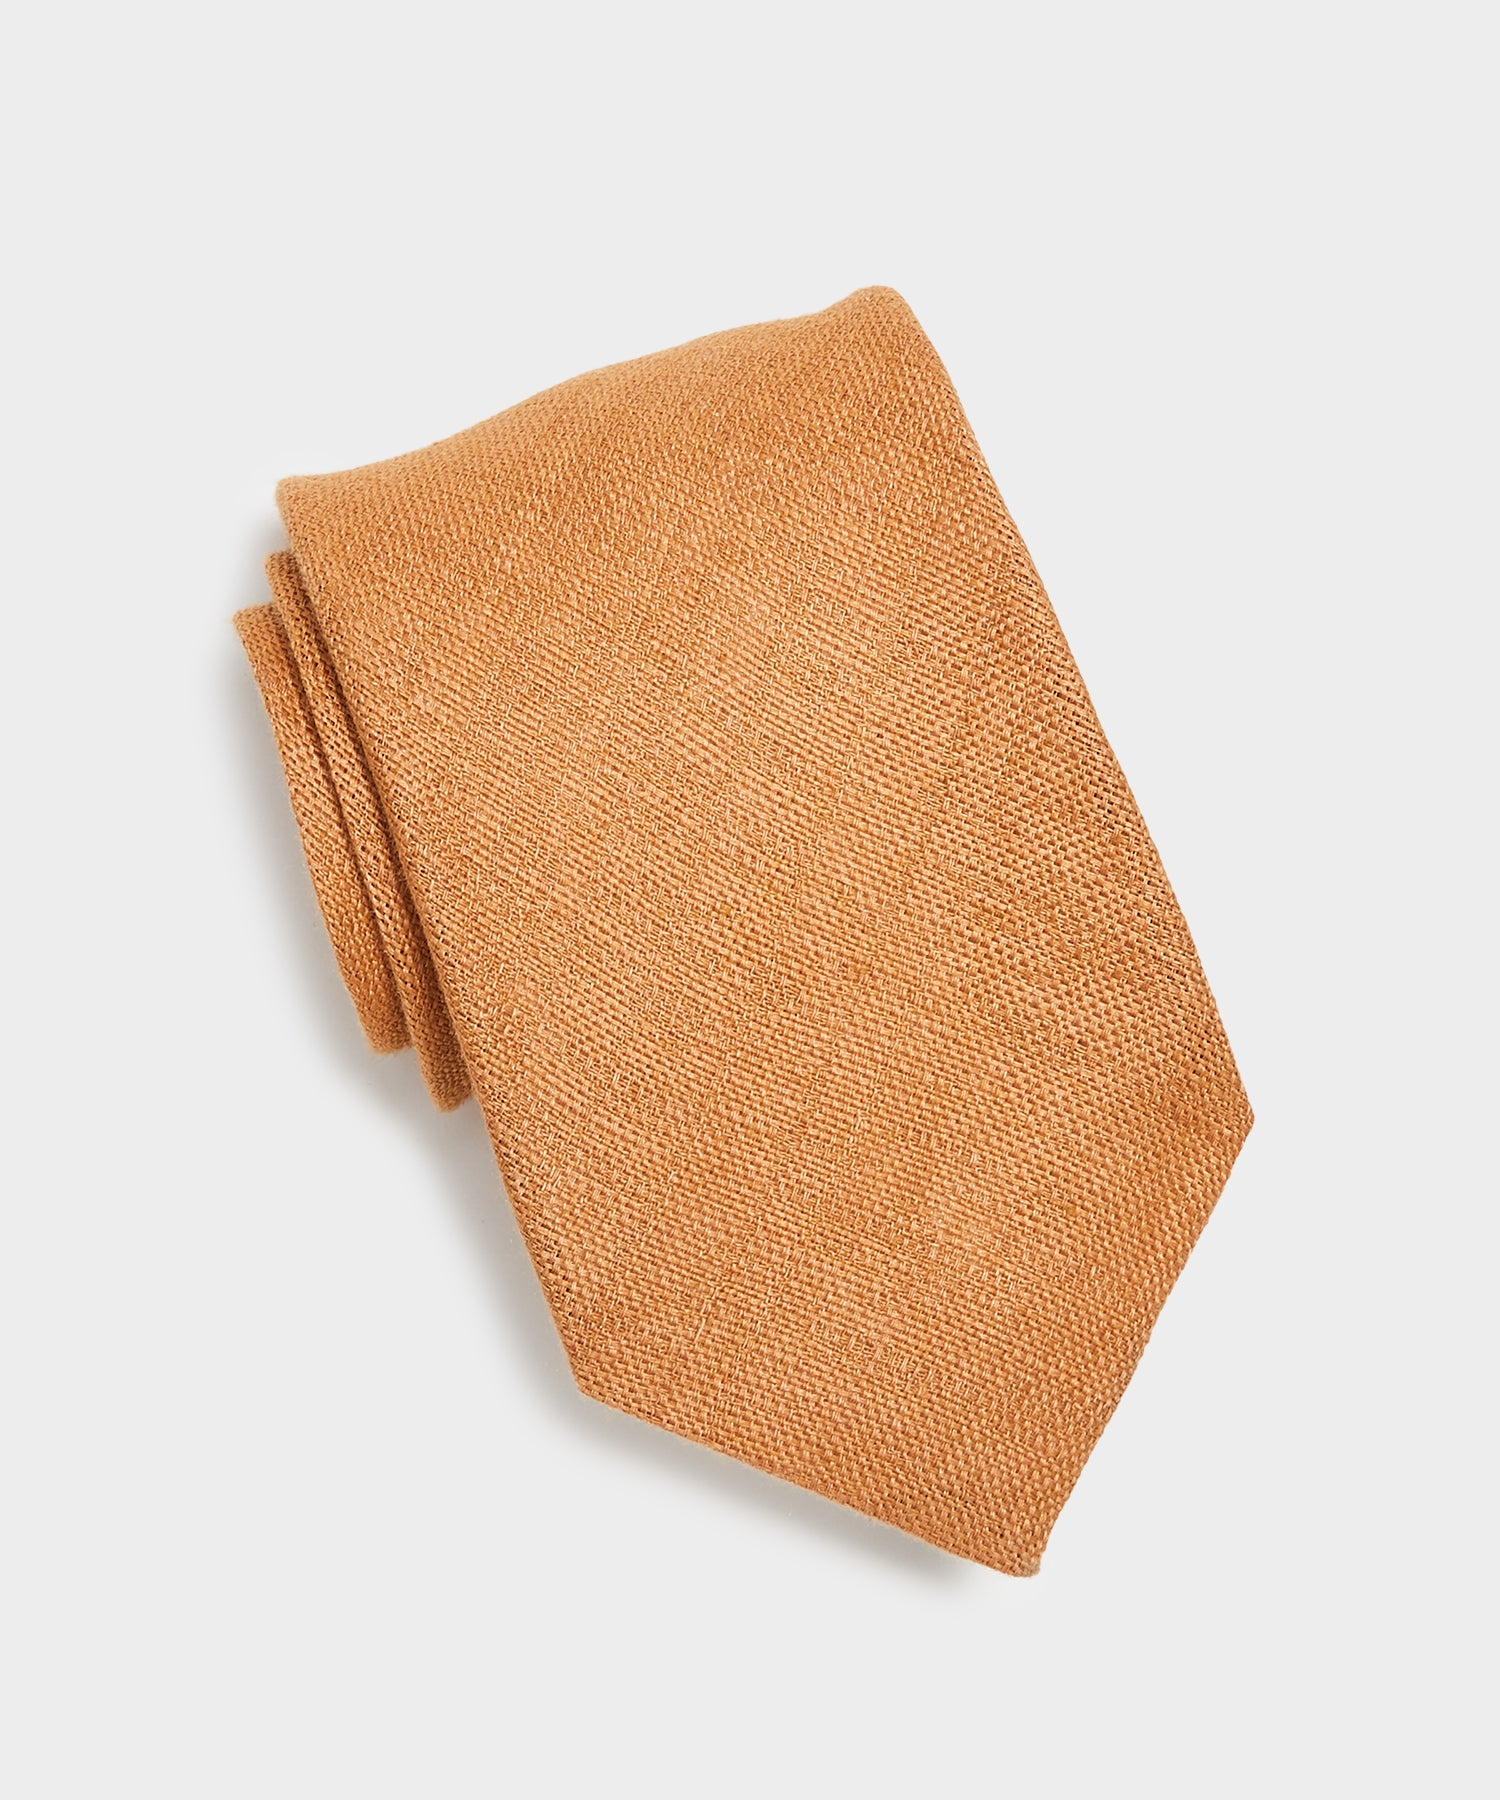 Drake's Textured Linen Tie in Tan